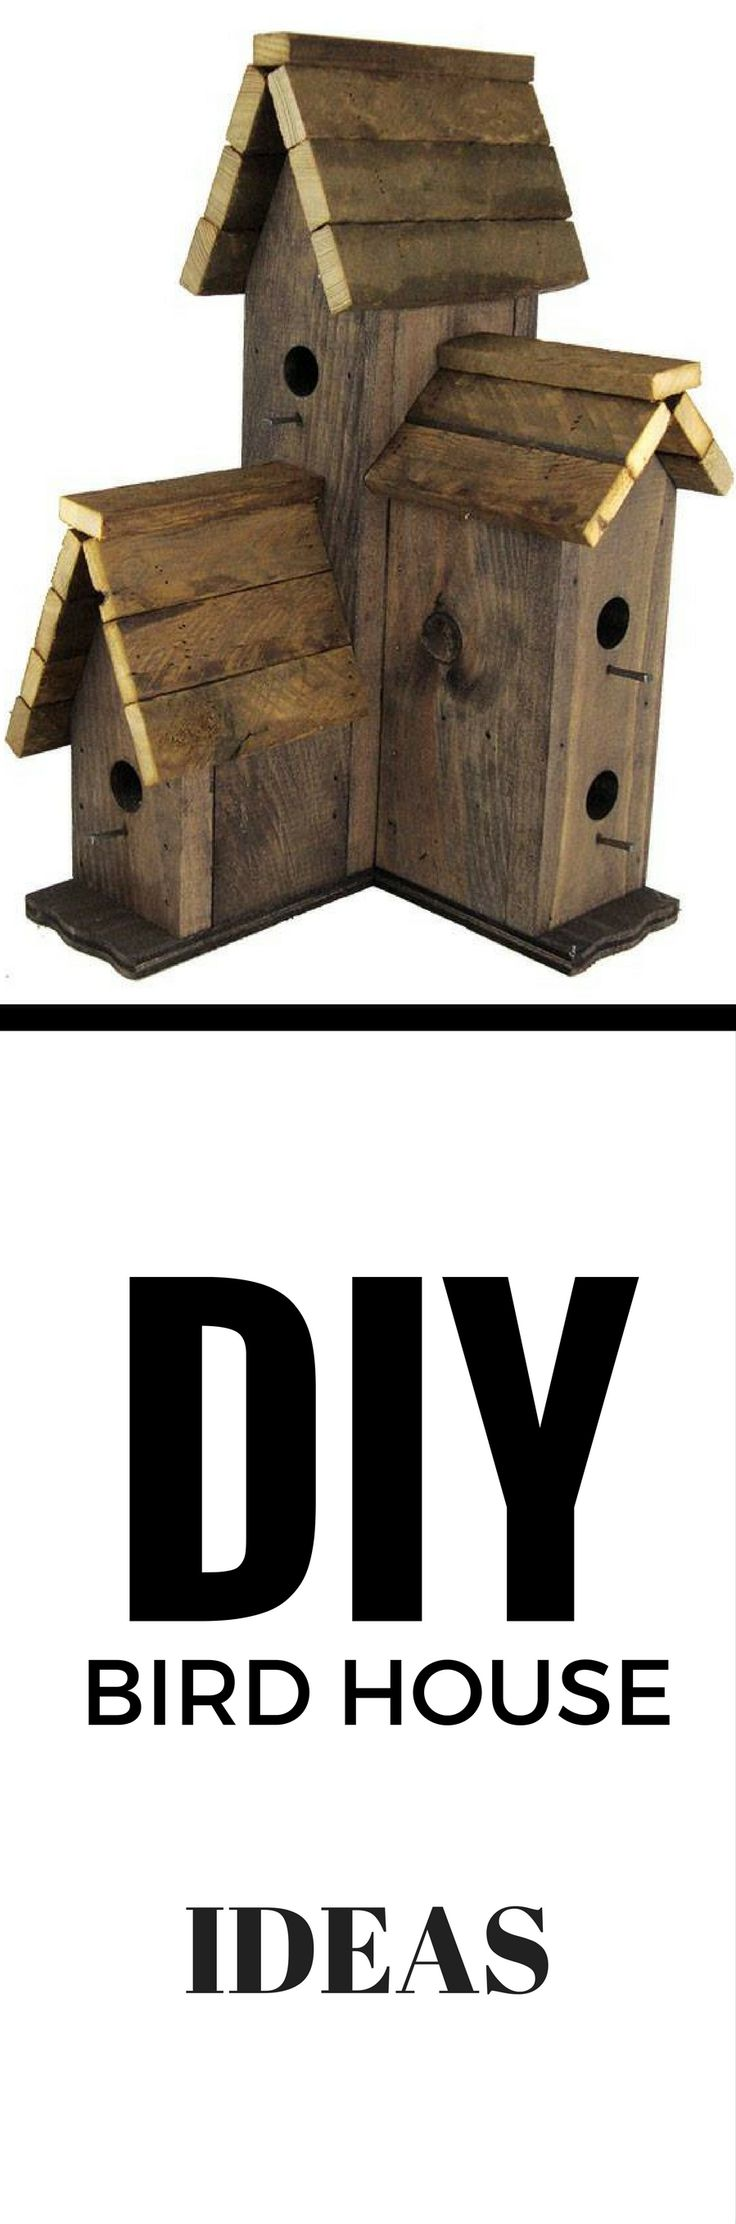 Bird House Ideas and Inspiration http://vid.staged.com/1VWs